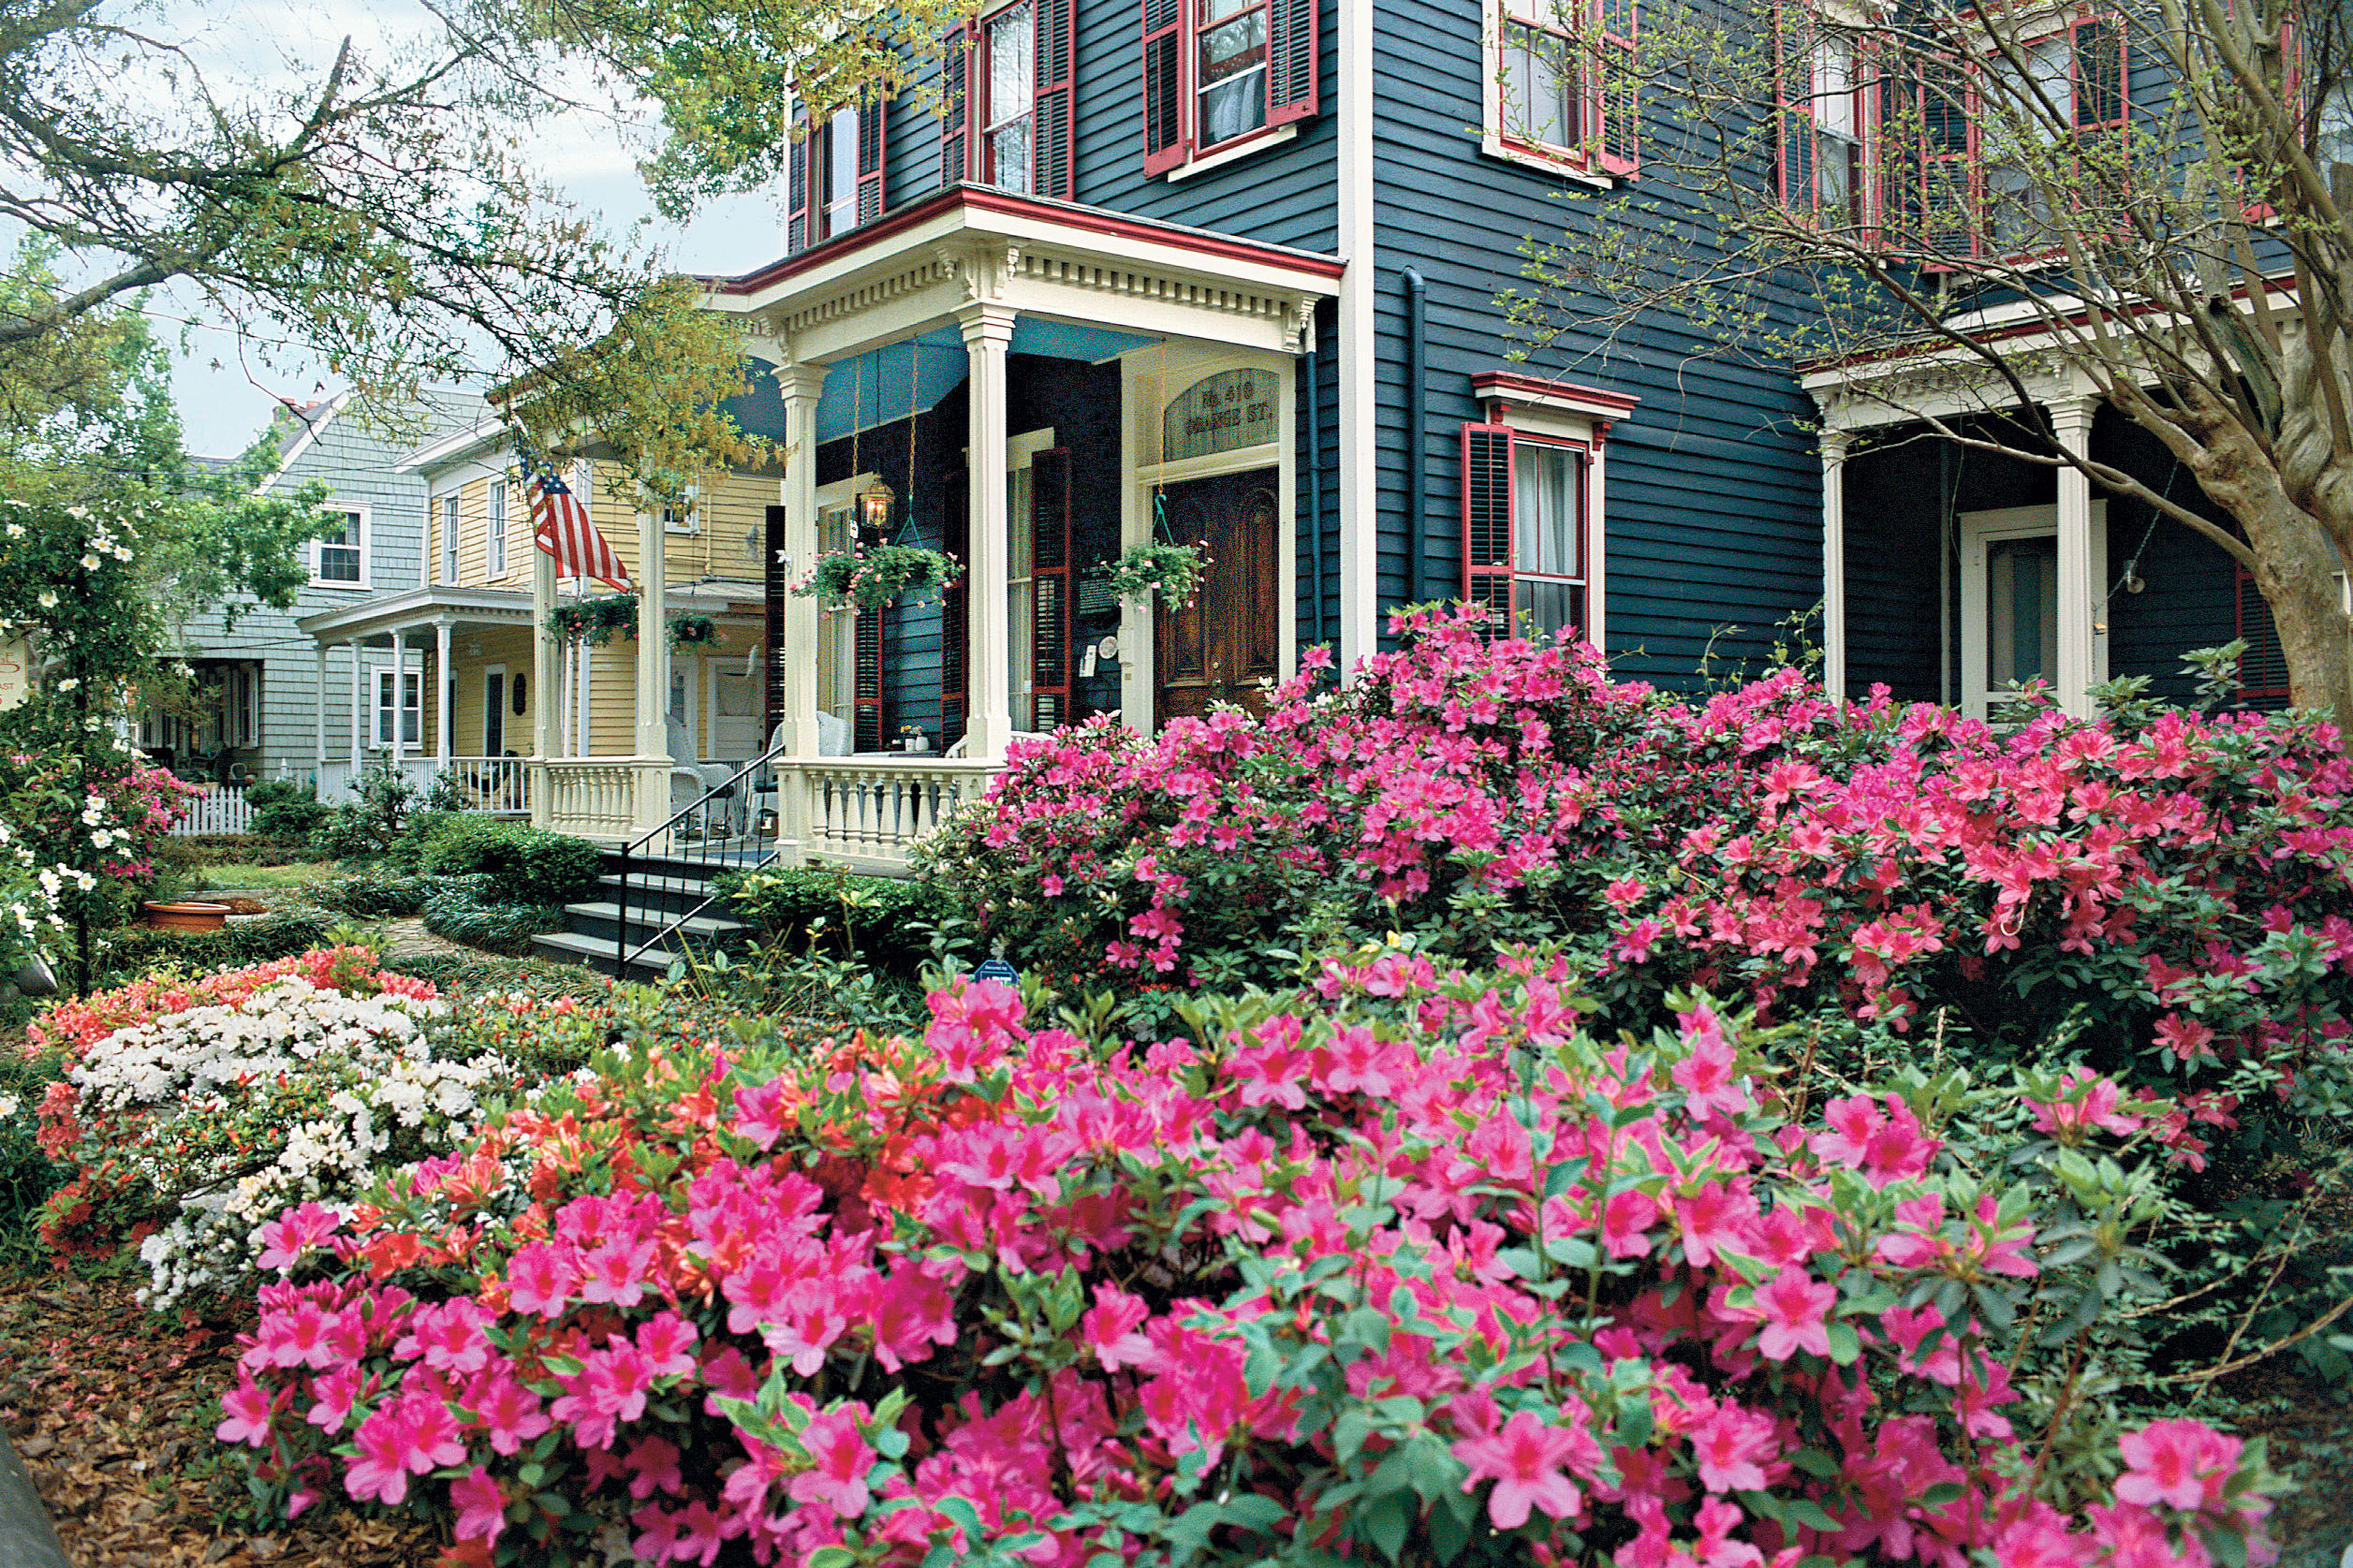 Bloom Town: Wilmington, North Carolina